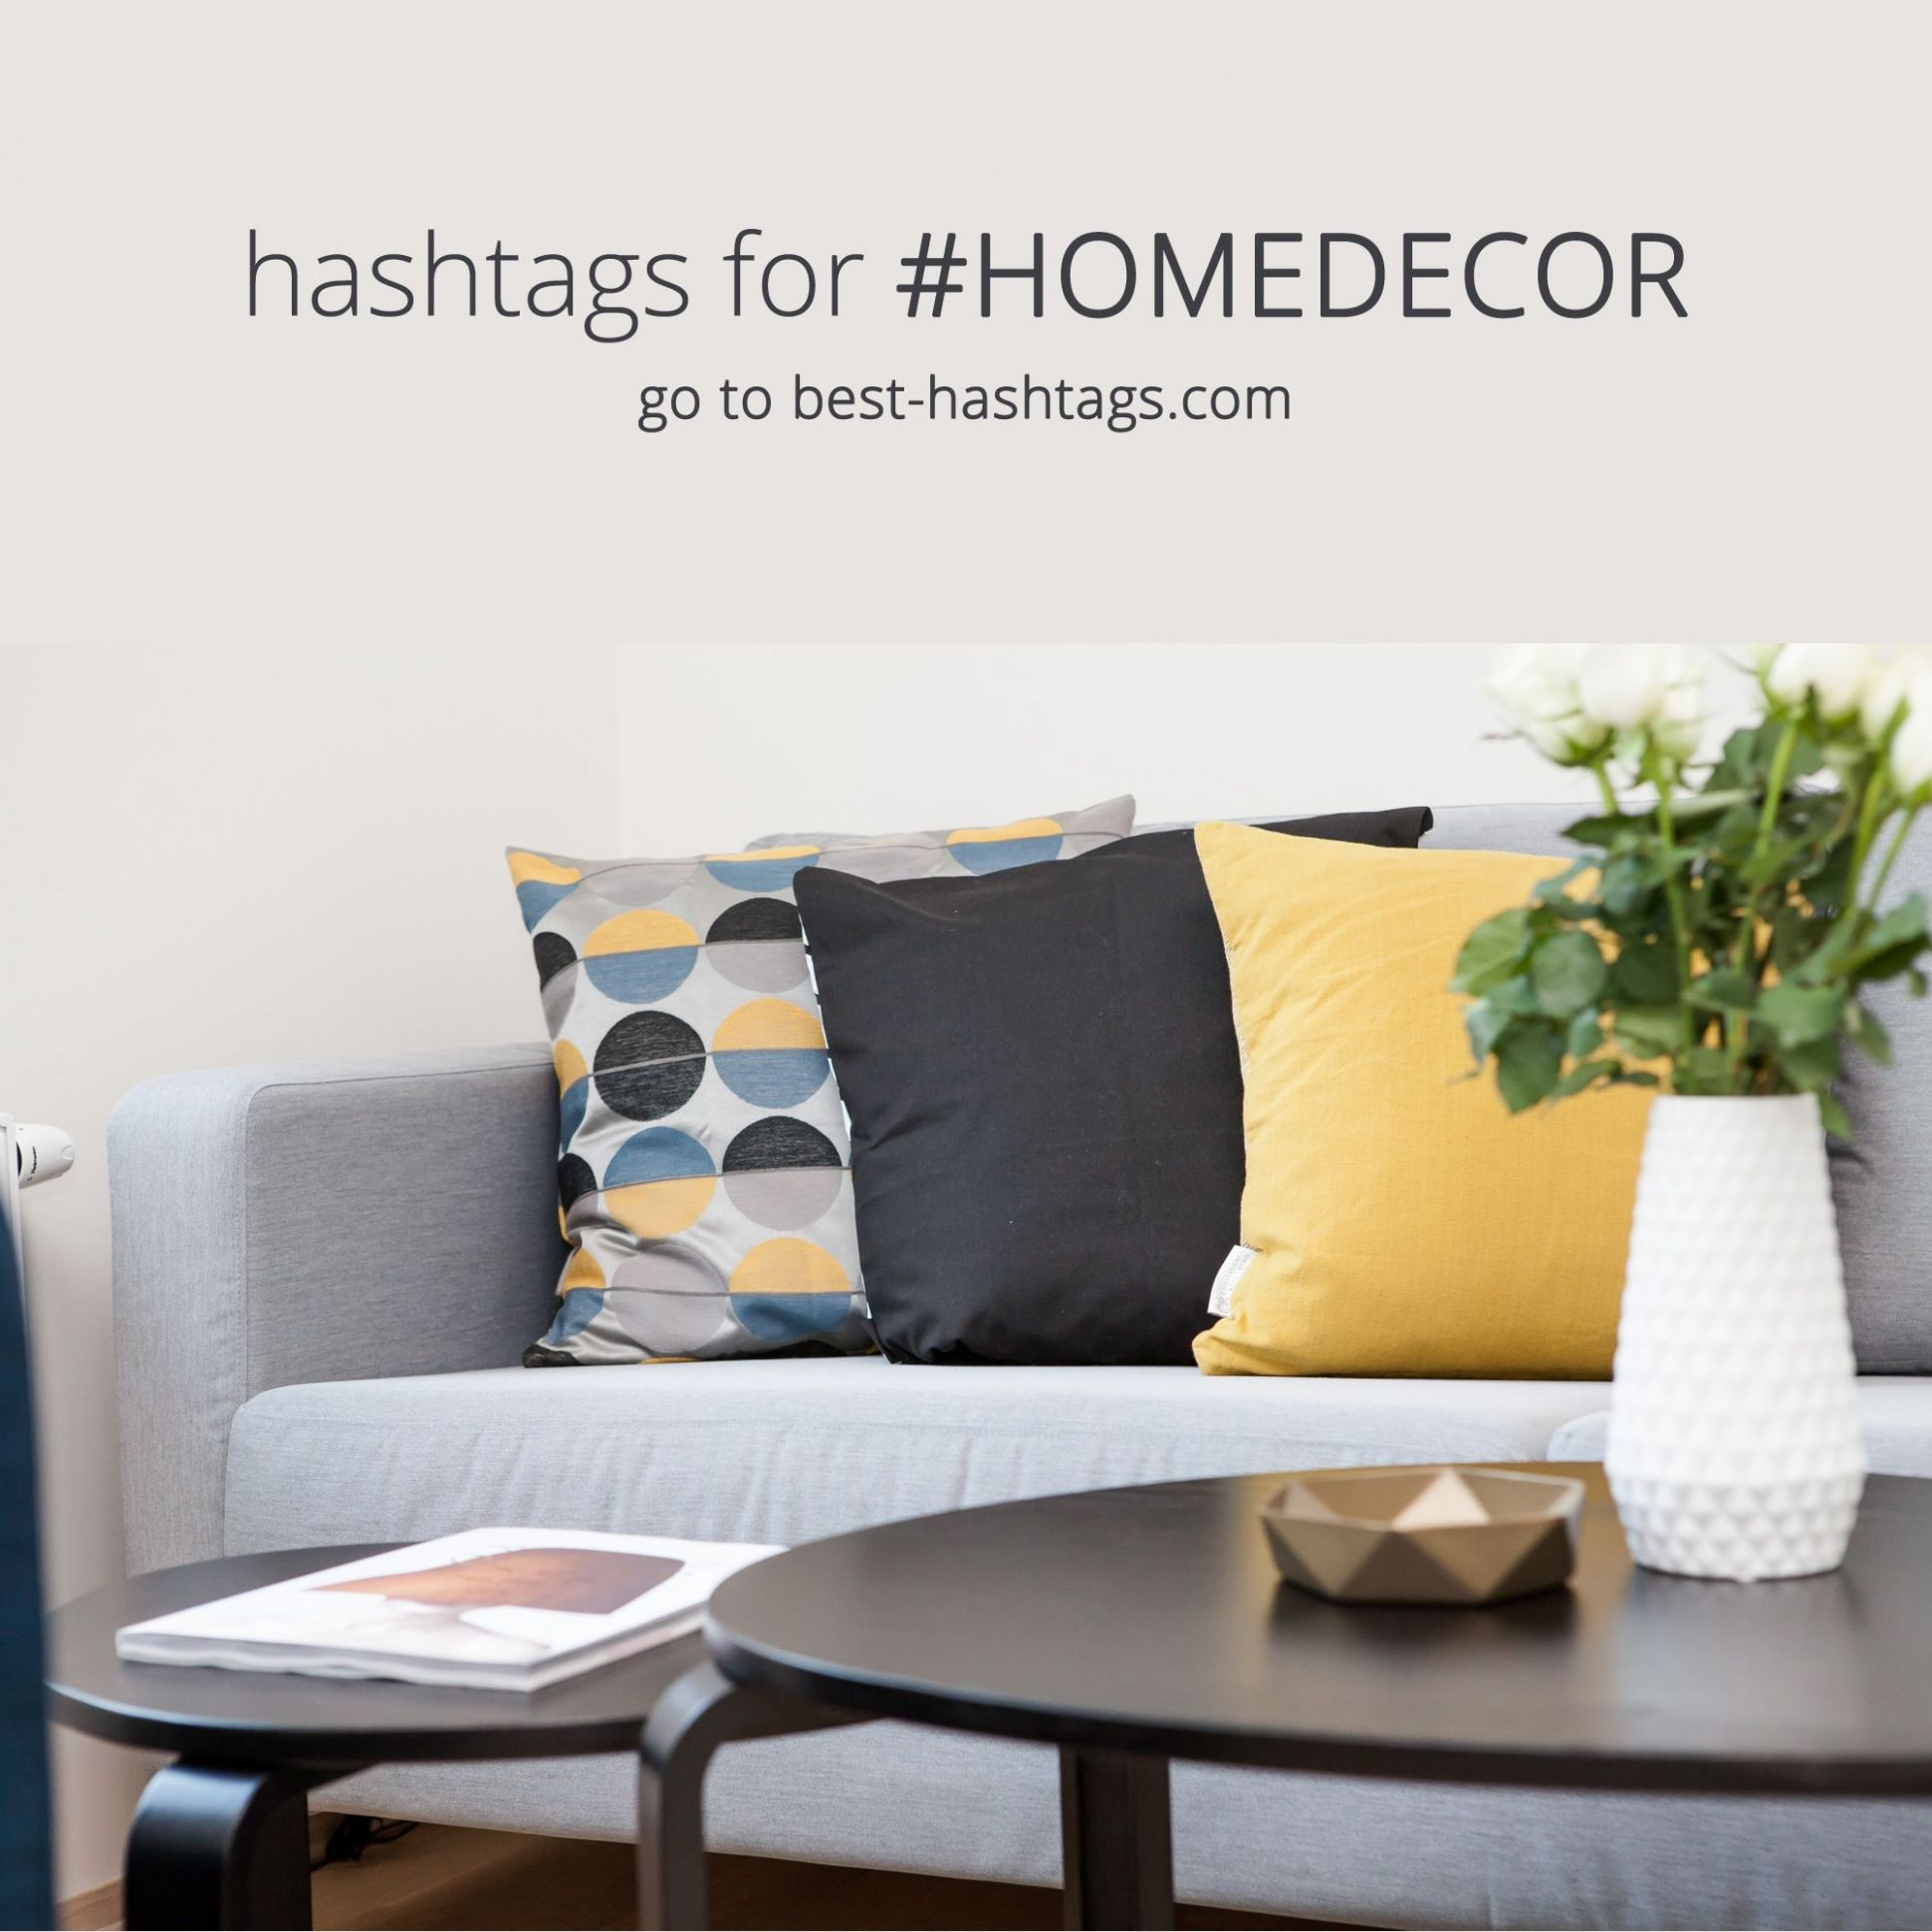 Most popular instagram hashtags used with homedecor (With images ...